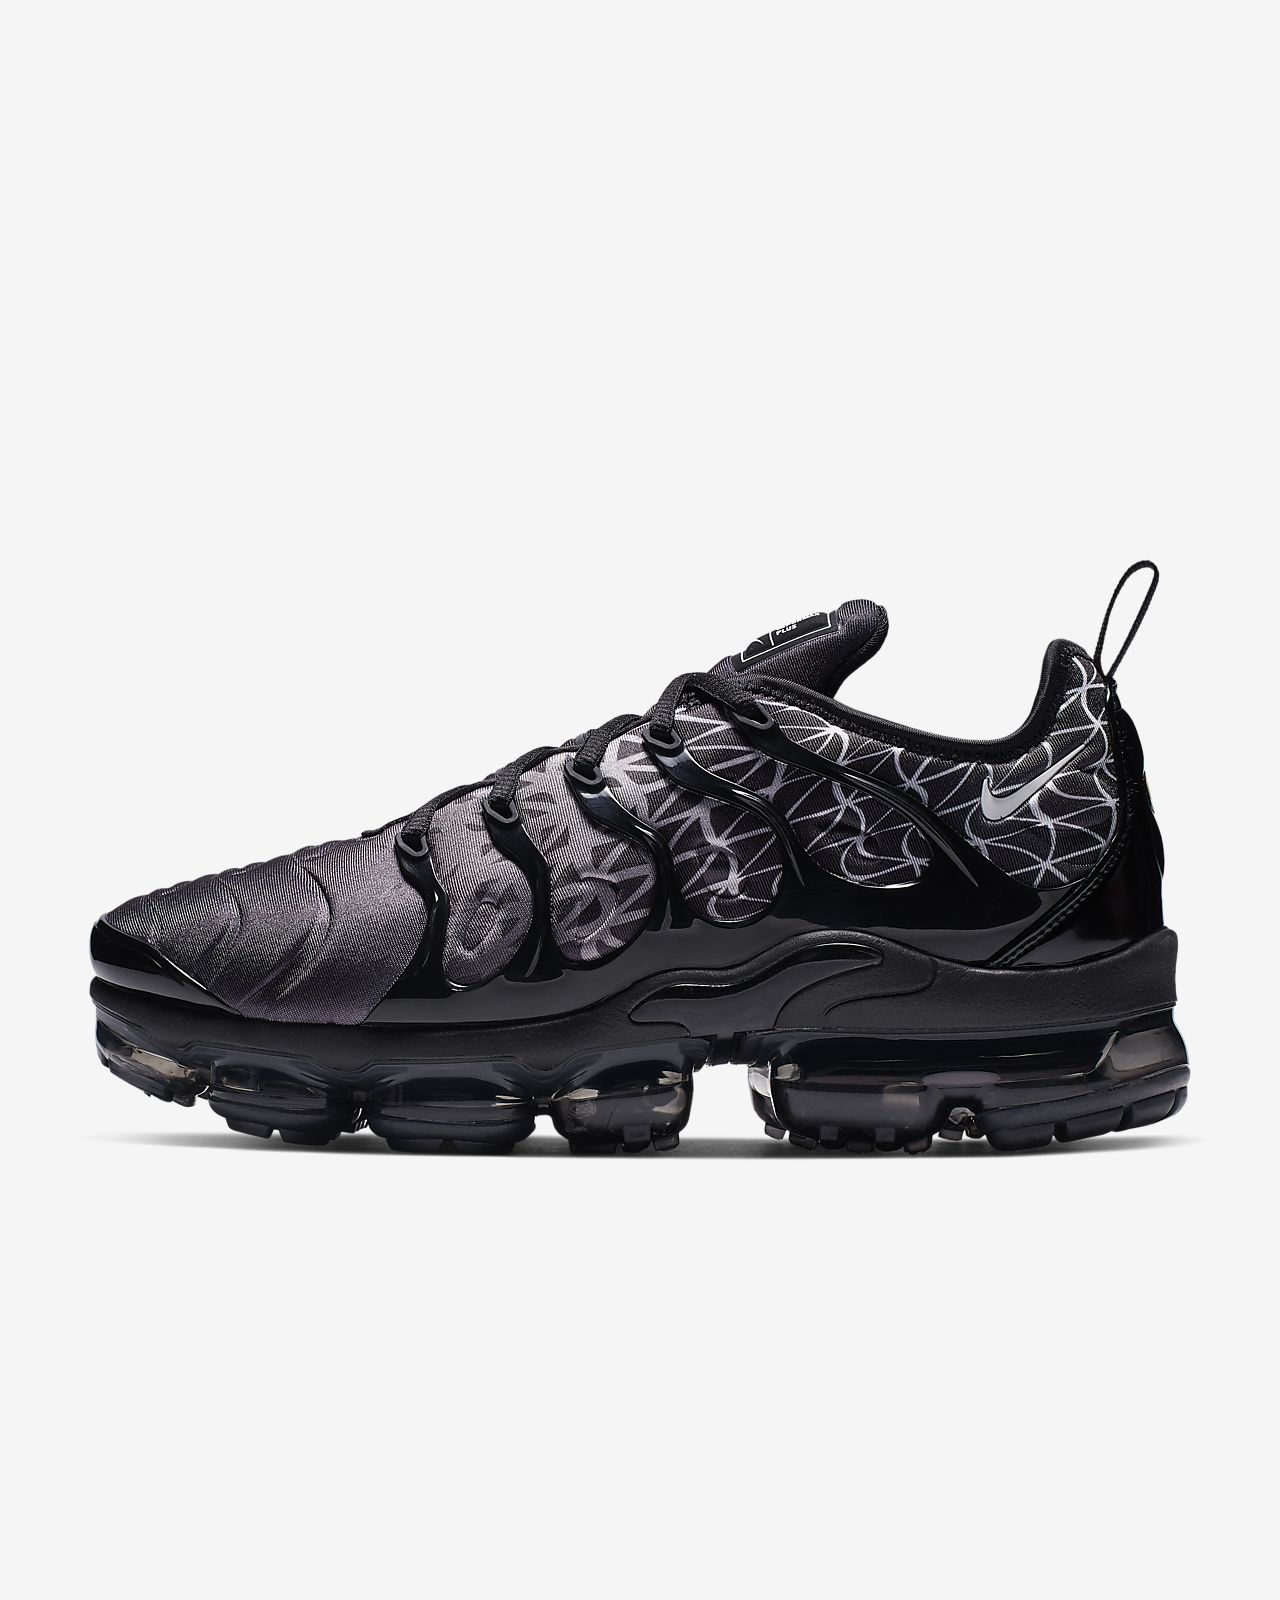 sneakers for cheap 3c48f 8ea70 ... Chaussure Nike Air VaporMax Plus pour Homme